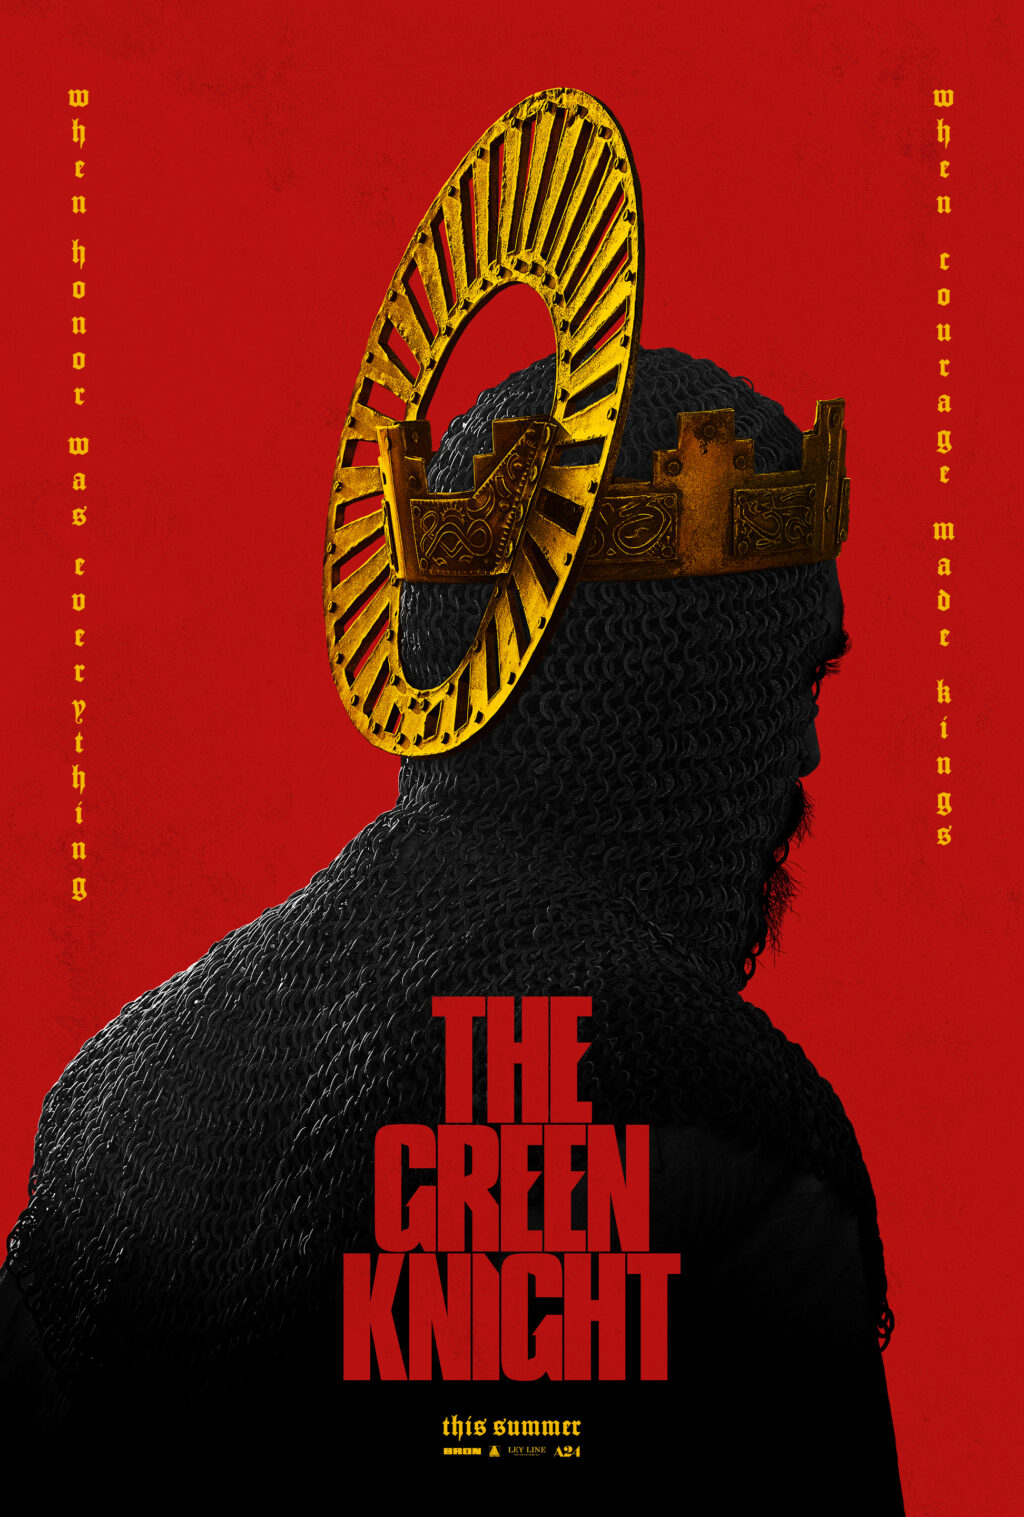 The Green Knight Poster 1024x1517 - Trailer: A24's Horror-Fantasy Flick THE GREEN KNIGHT Slays 5/29